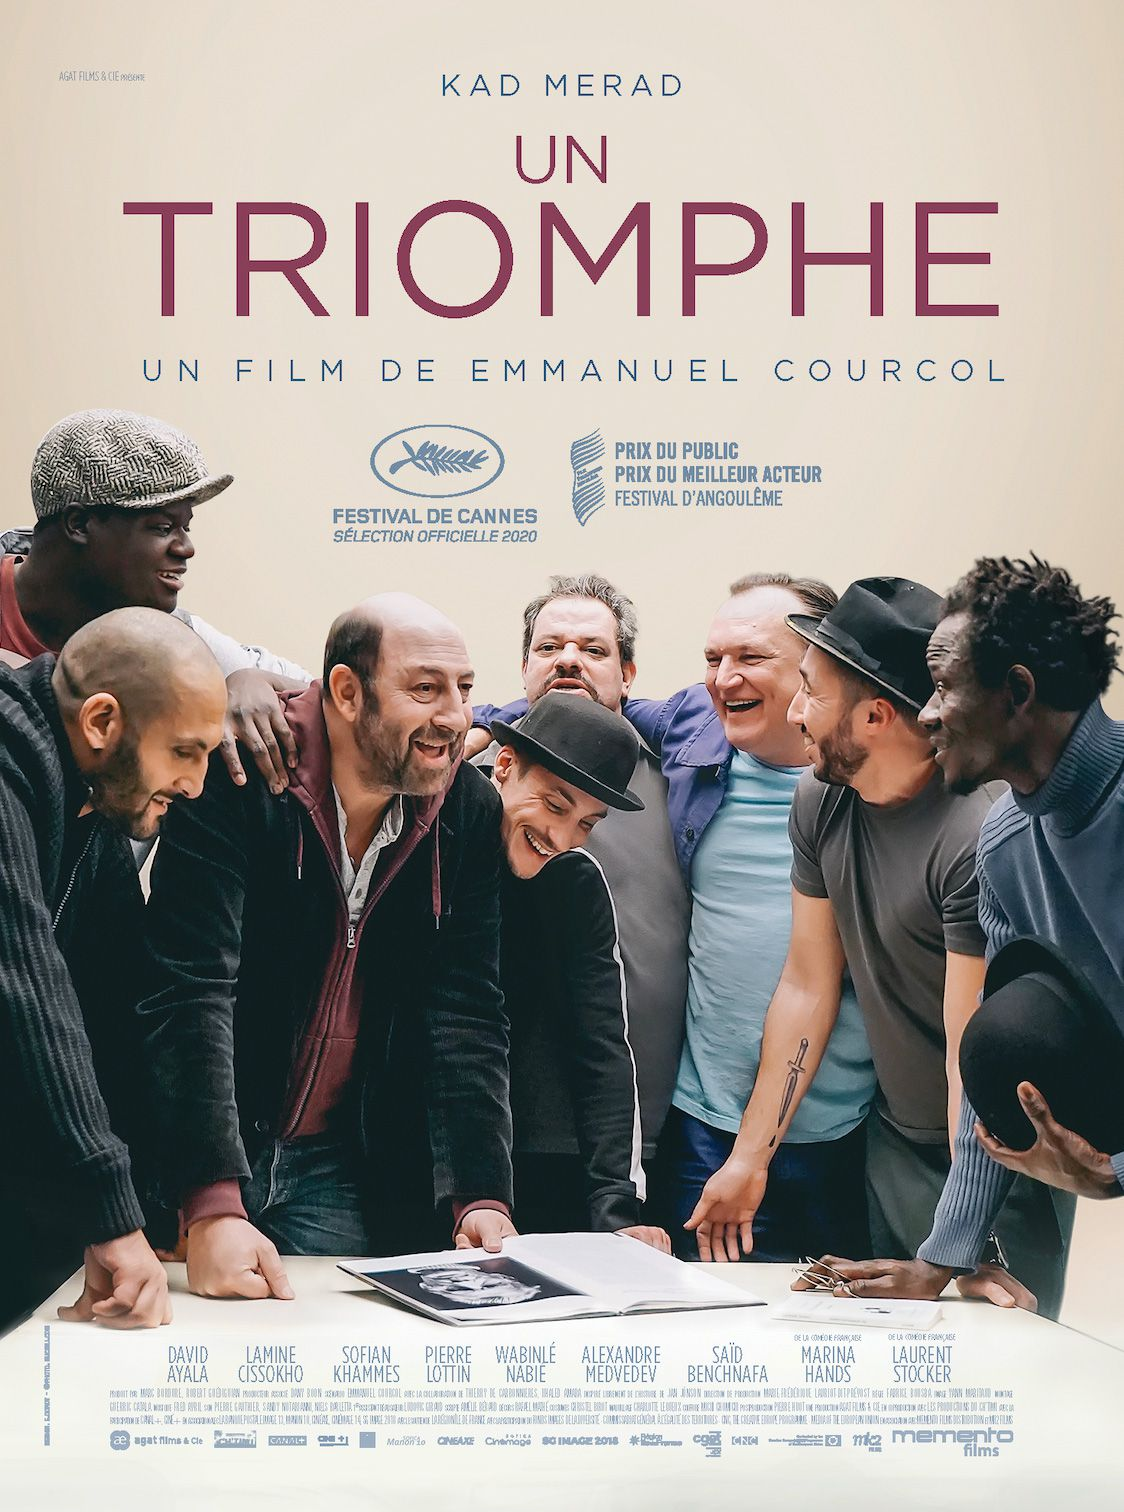 Un Triomphe - Film (2020) streaming VF gratuit complet